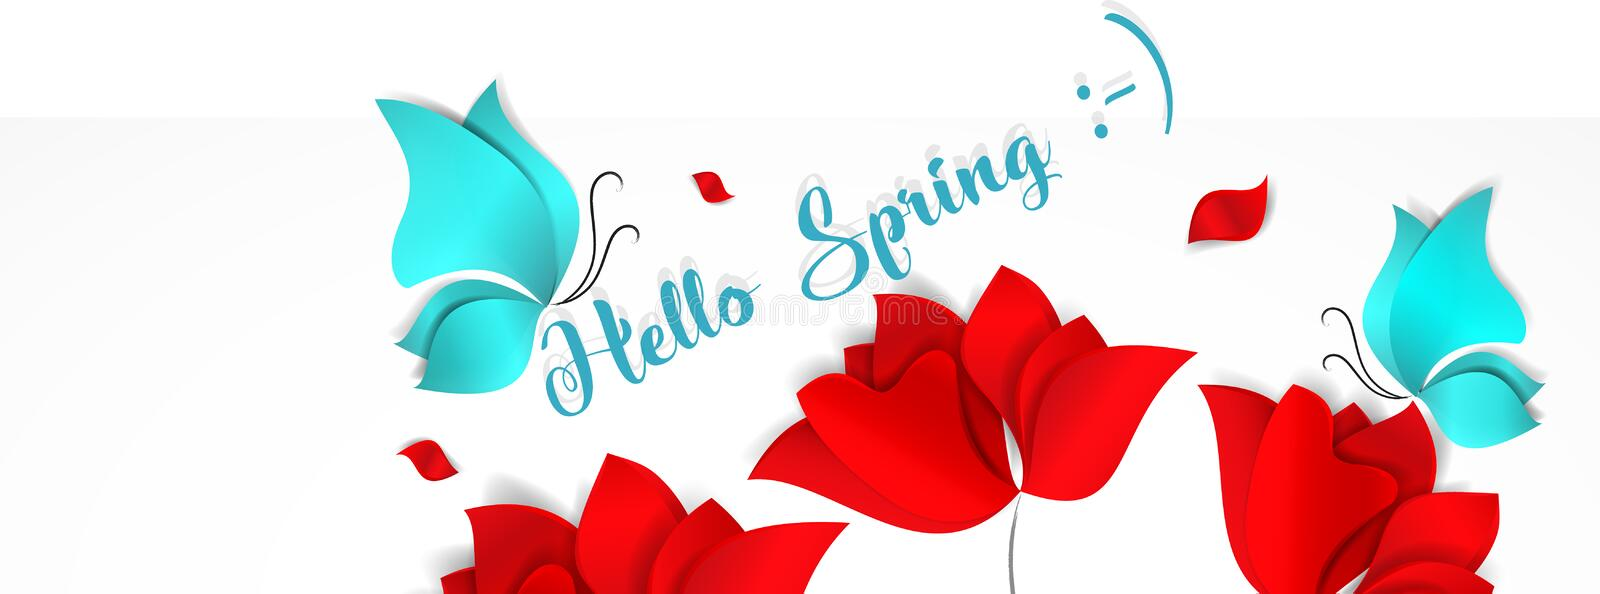 Template banner for social nerwork with place for image. Hello Spring floral 3d vector background with bright red. Flowers and blue butterflies stock illustration